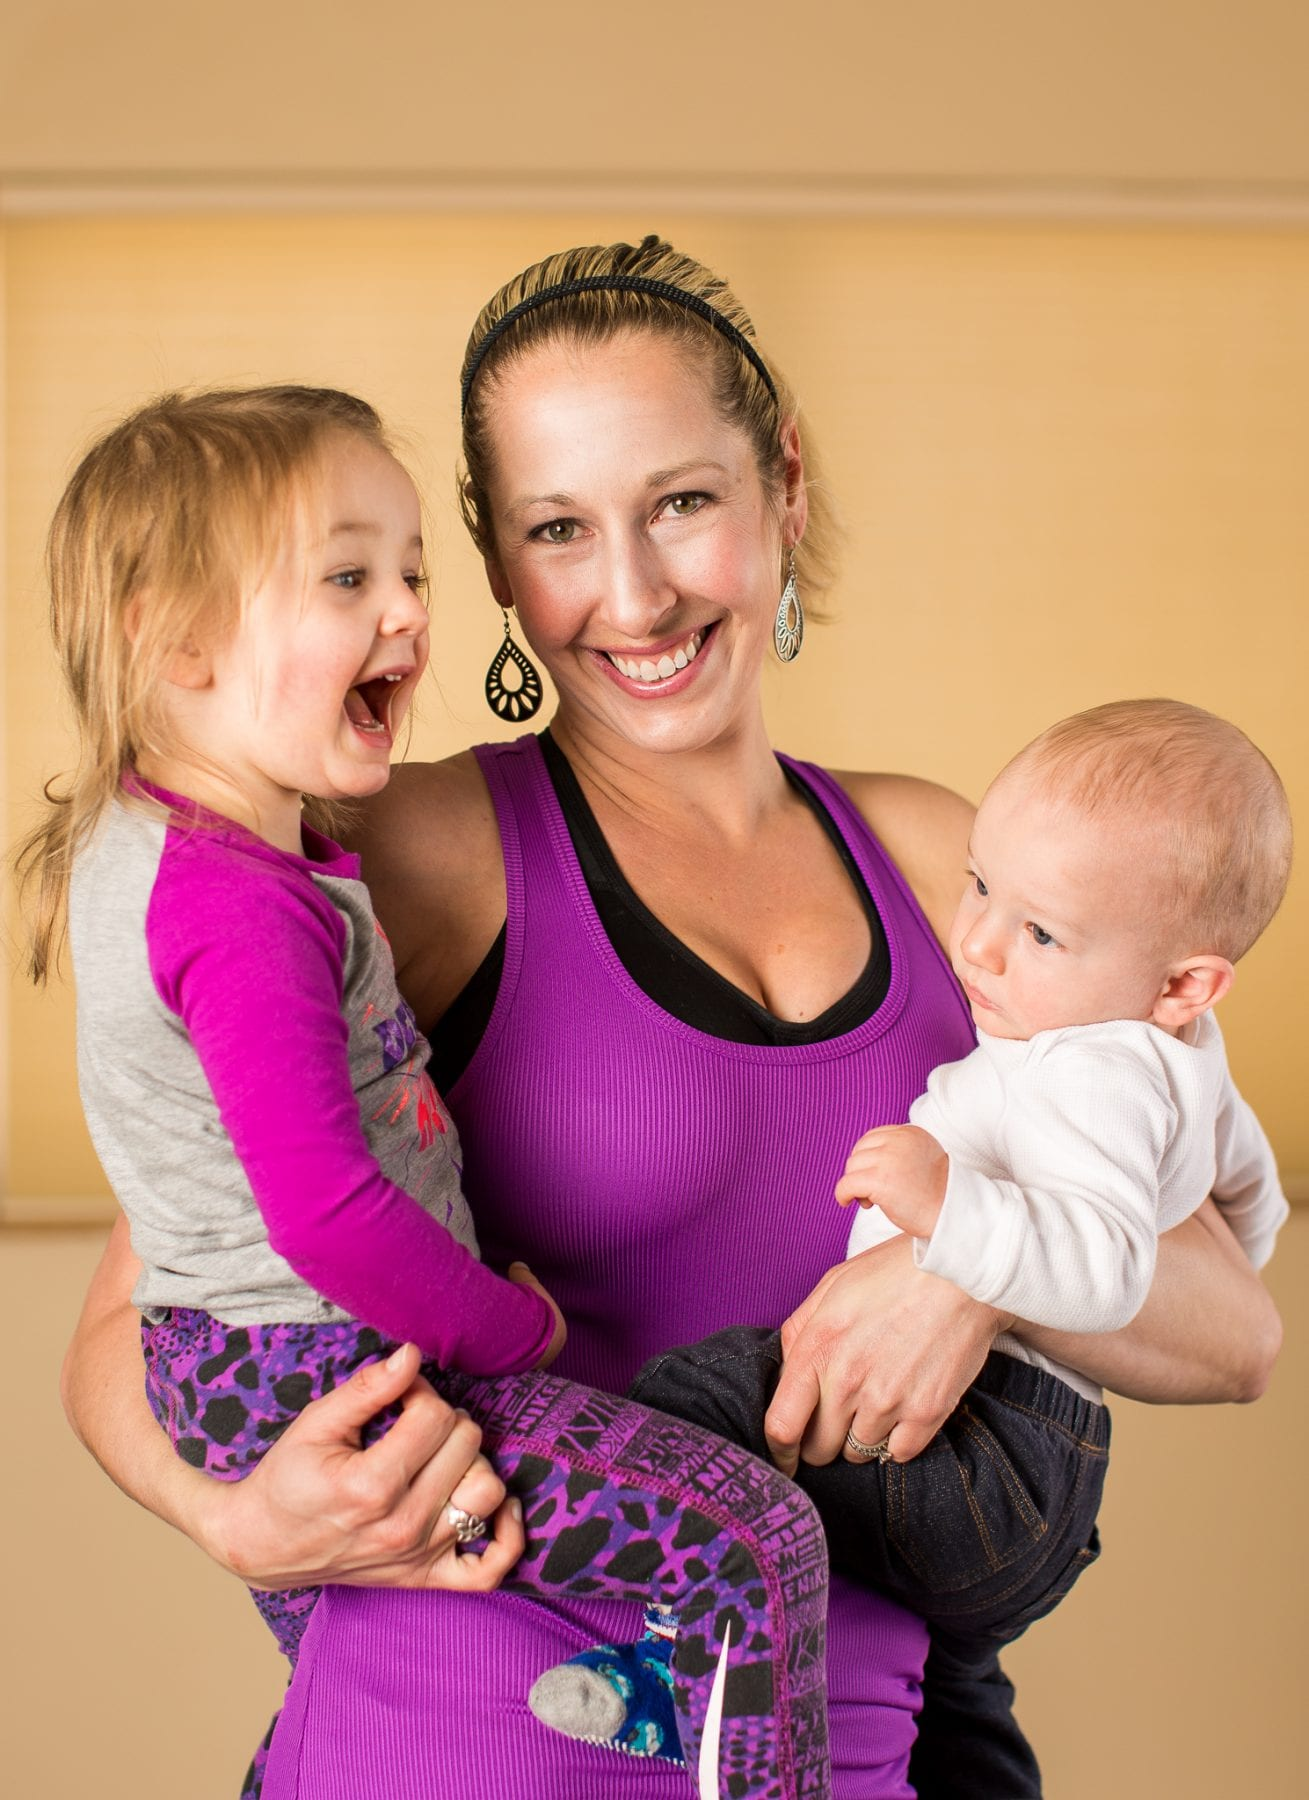 VFit Studio Owner Rachele with her kids